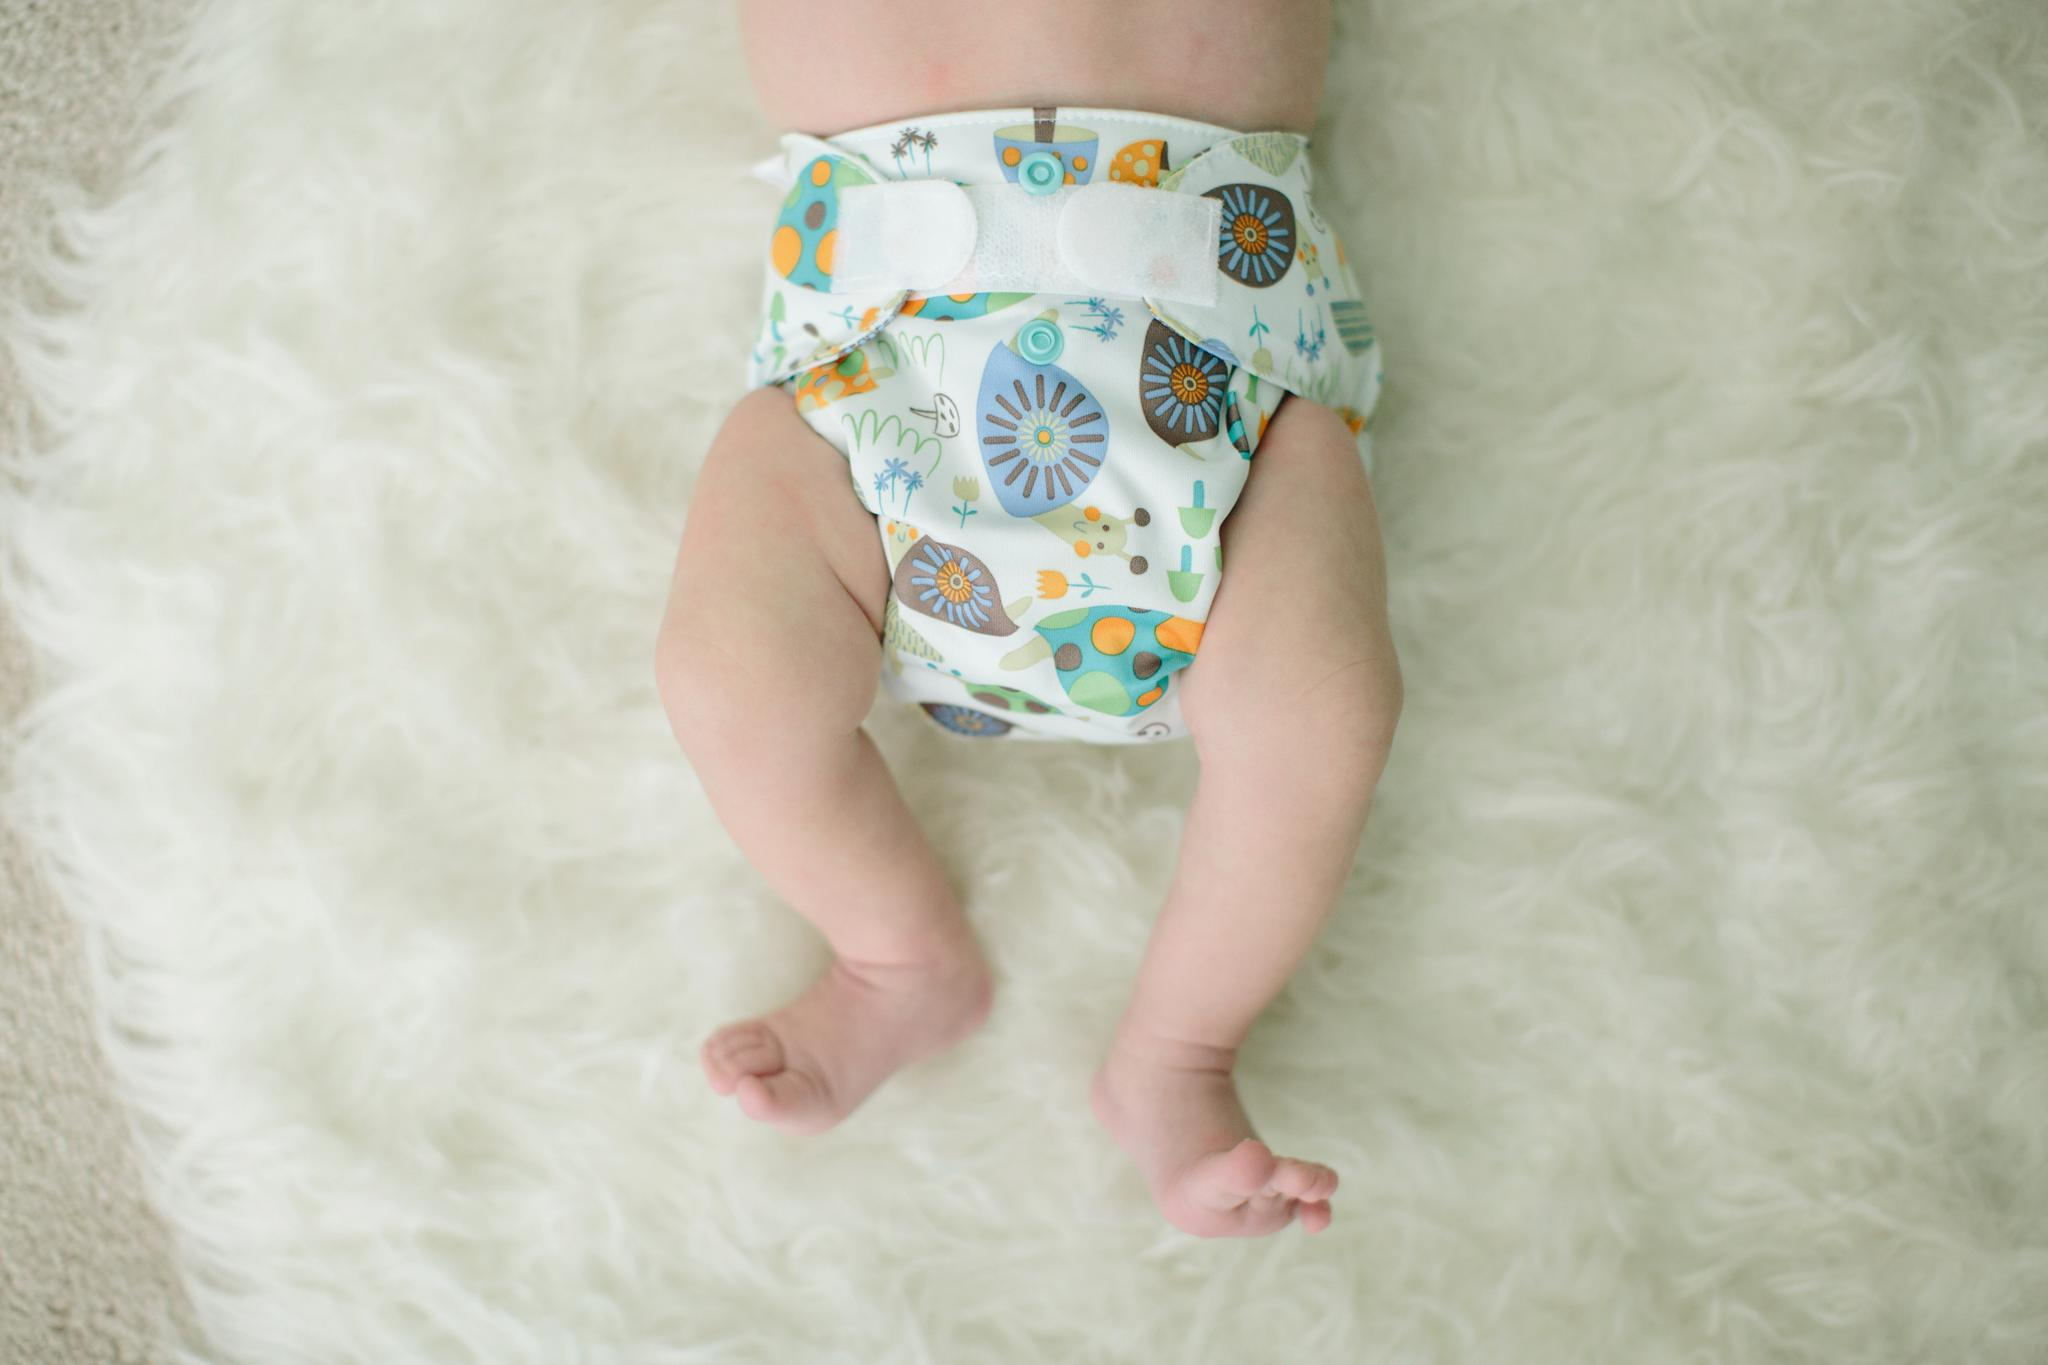 lil_joey_newborn_cloth_diaper_review_8540.jpg